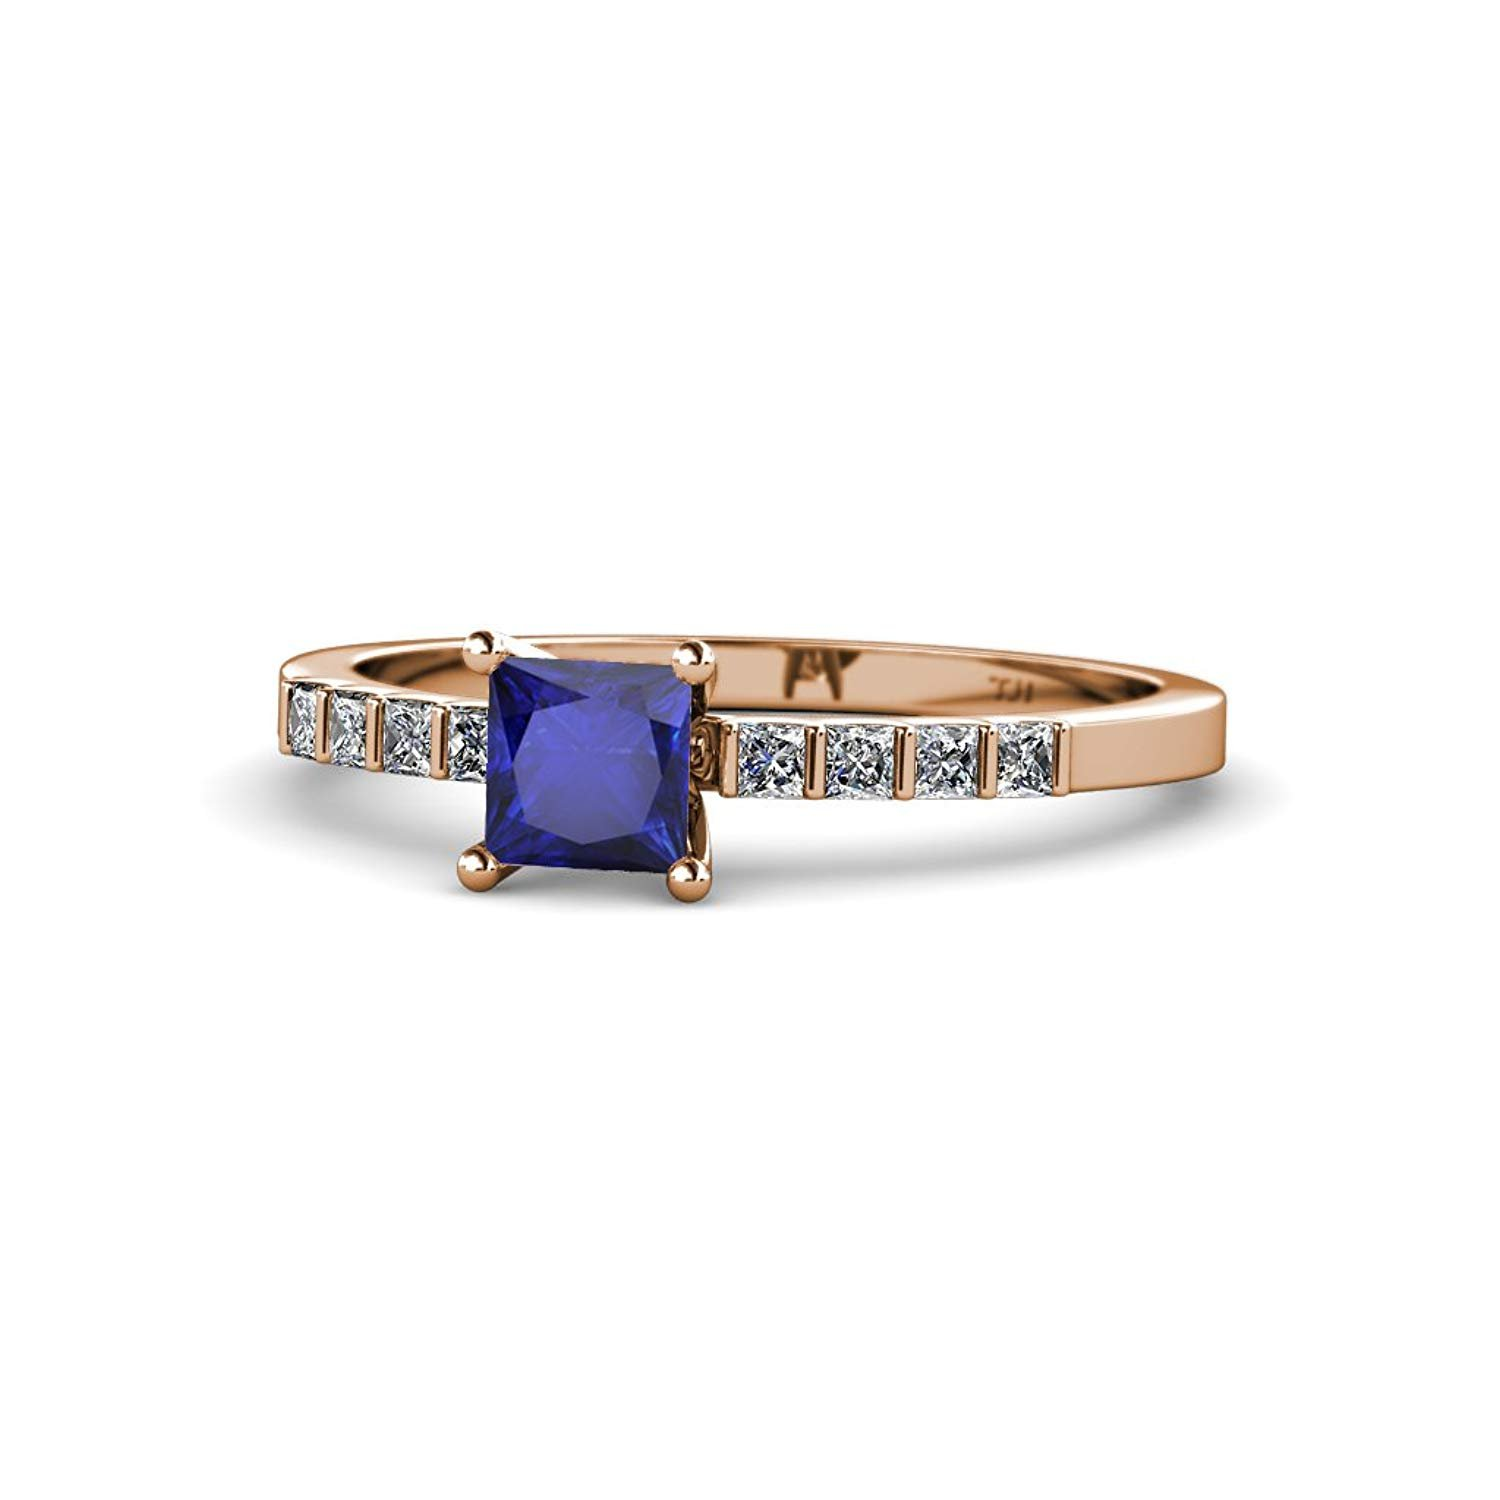 Blue Sapphire and Diamond (SI1-SI2, G-H) Engagement Ring 0.79 Carat tw in 14K Rose Gold.size 9.0 by TriJewels